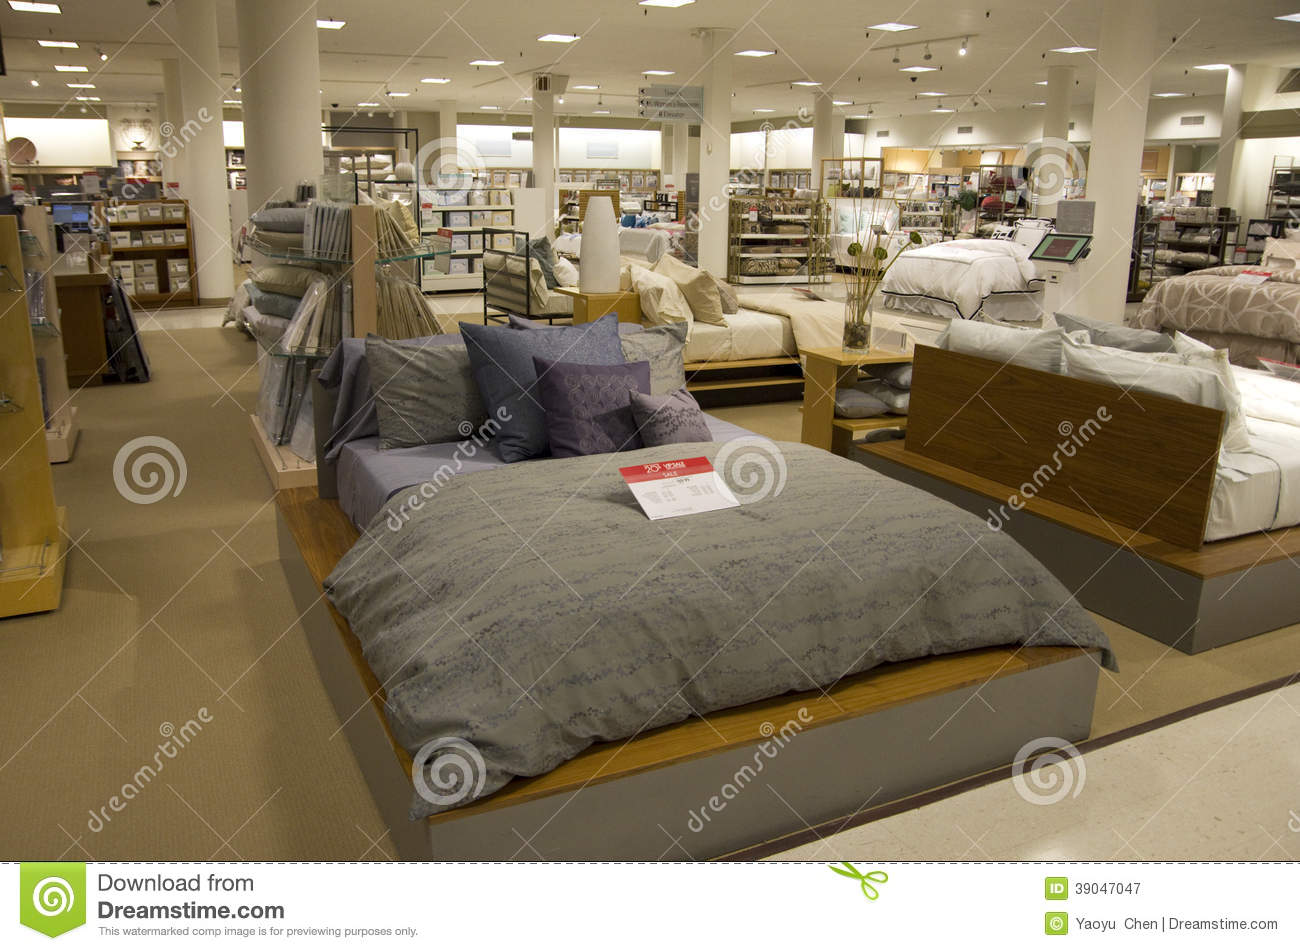 Bedding and home goods department store. Bedding And Home Goods Department Store Stock Image   Image  39047047